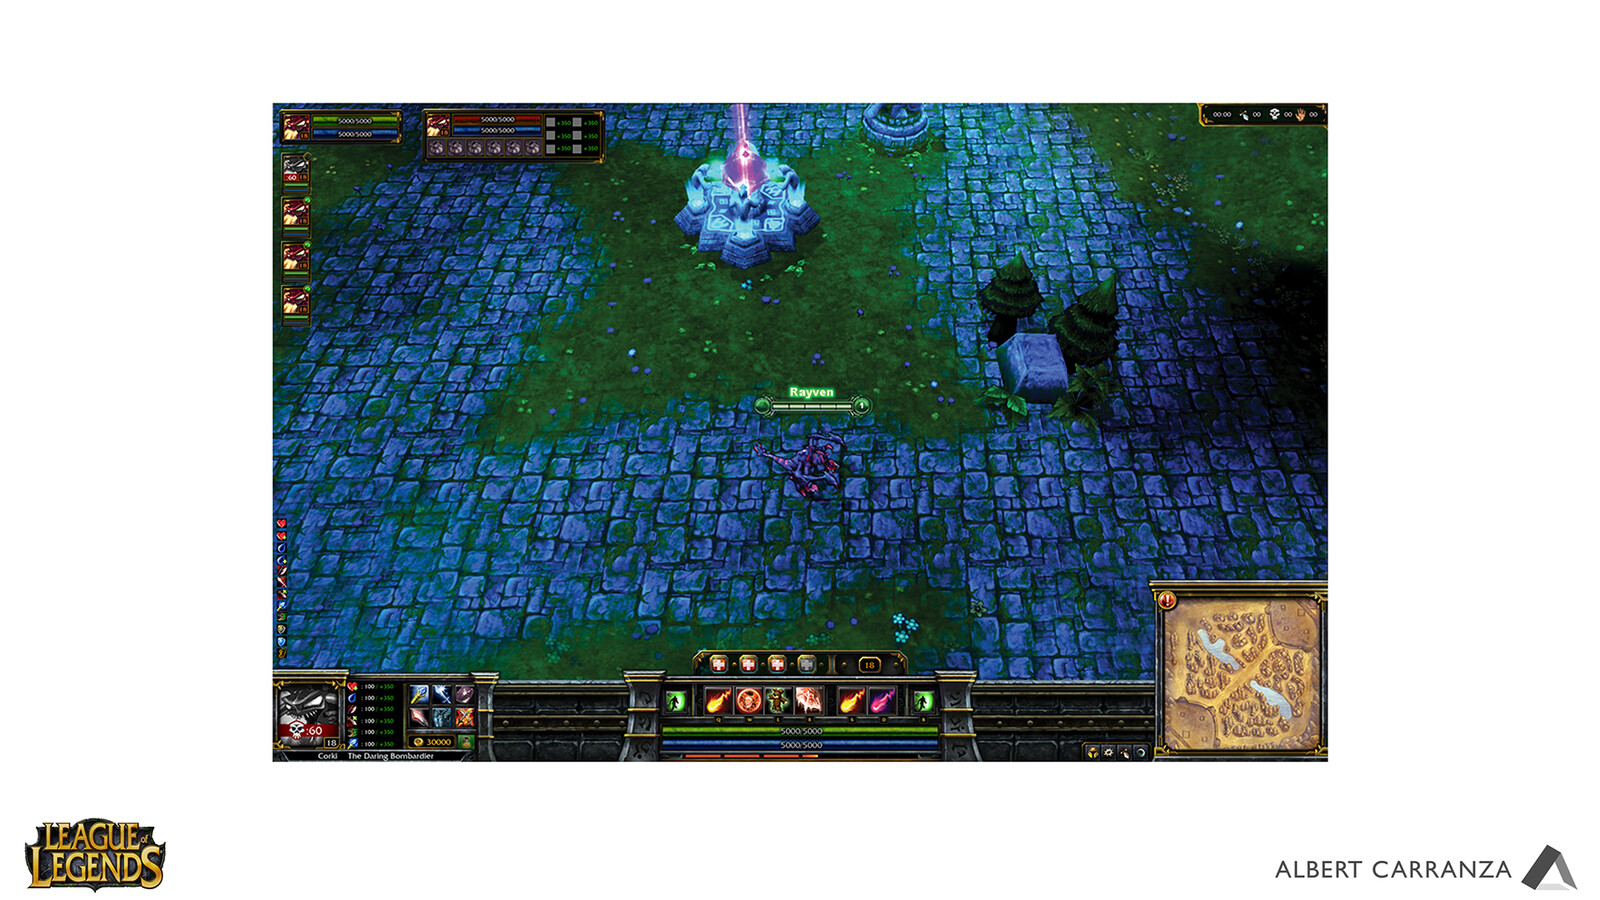 League of Legends HUD